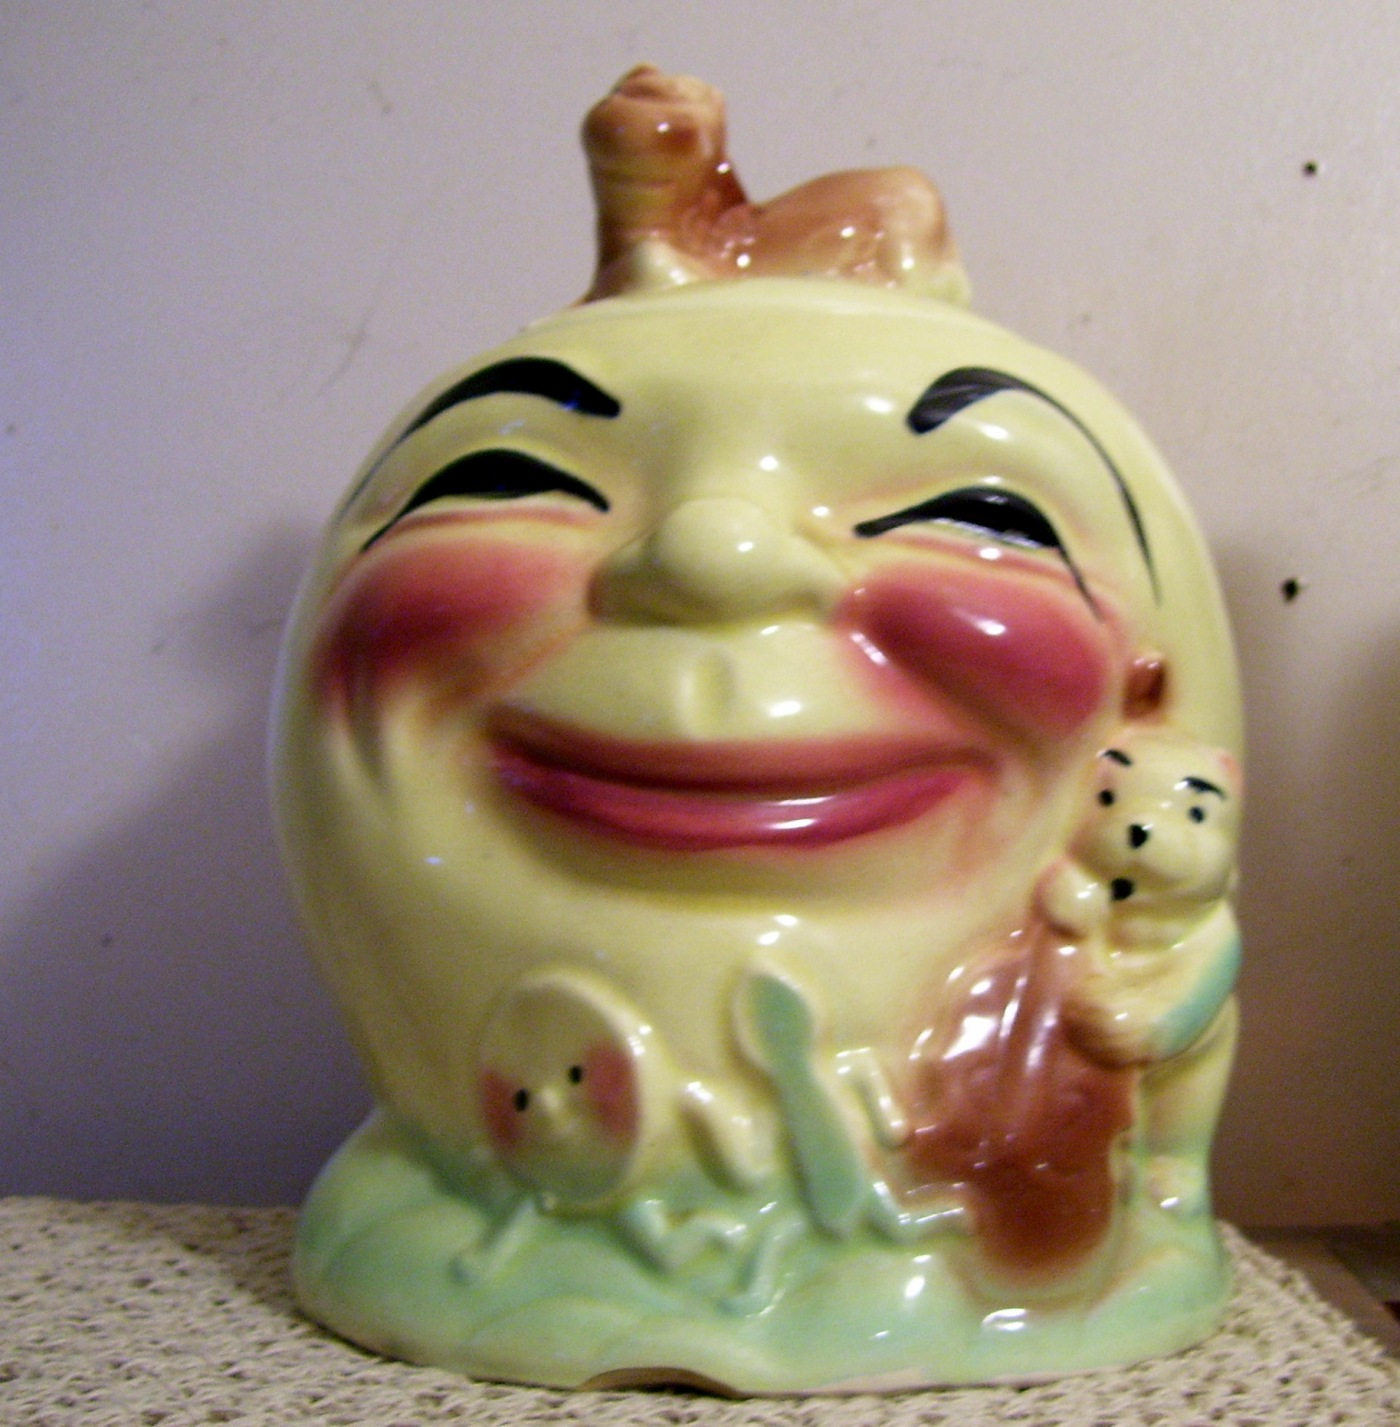 Craigslist Com Sacramento >> Estate Shop: Vintage Cookie Jars The Cow Jumped Over The Moon